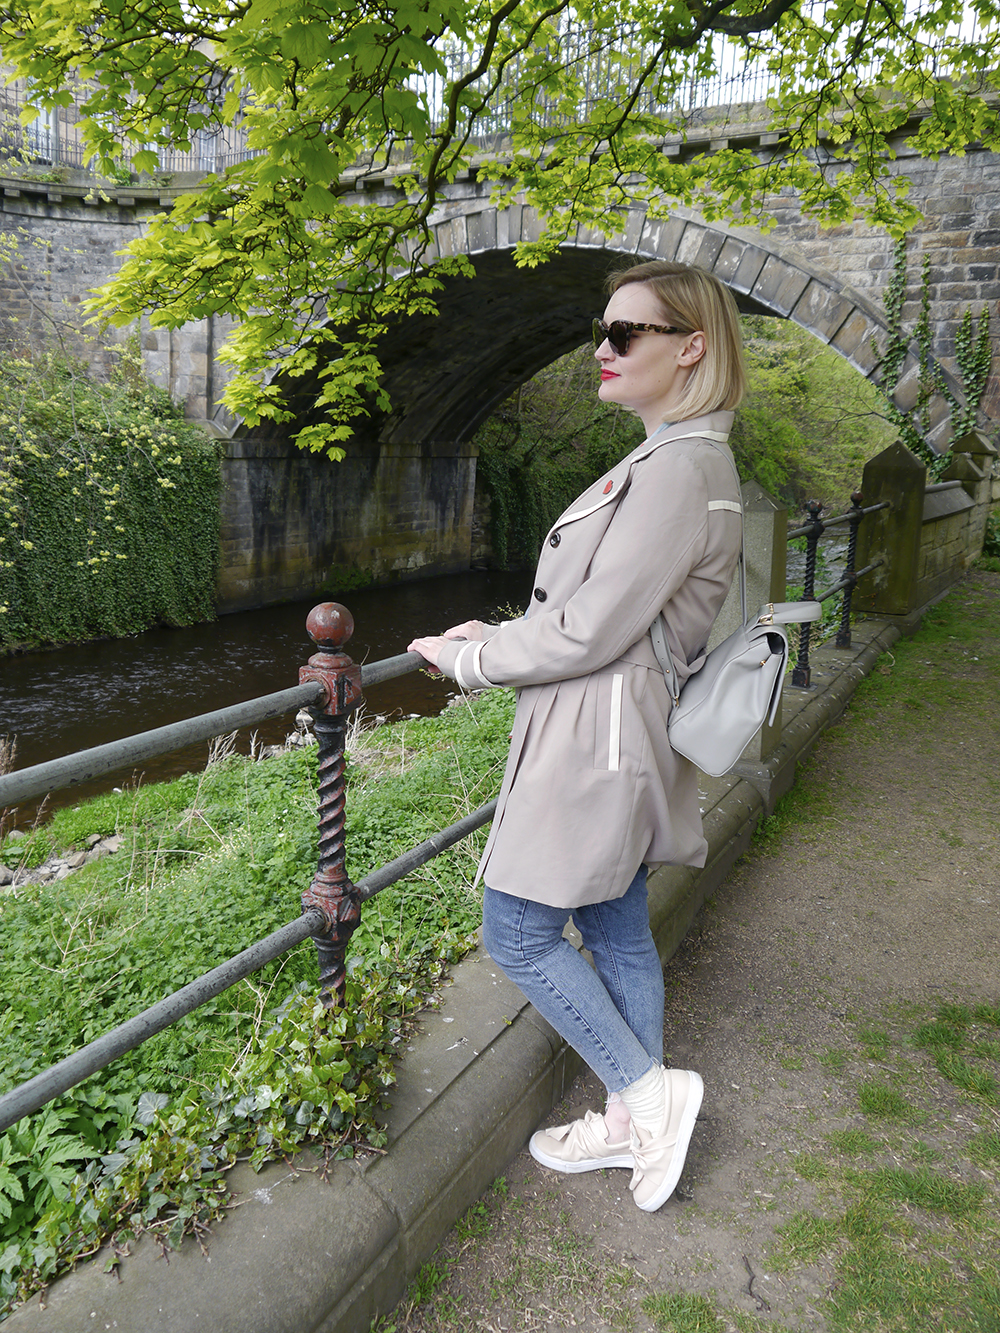 IOLLA Swinton tortoise shell sunglasses, IOLLA glasses, photoshoot in Stockbridge, oversized tortoishell catseye sunglasses, Water of Leith walk, Dean Village Edinburgh walk, Edinburgh tips,